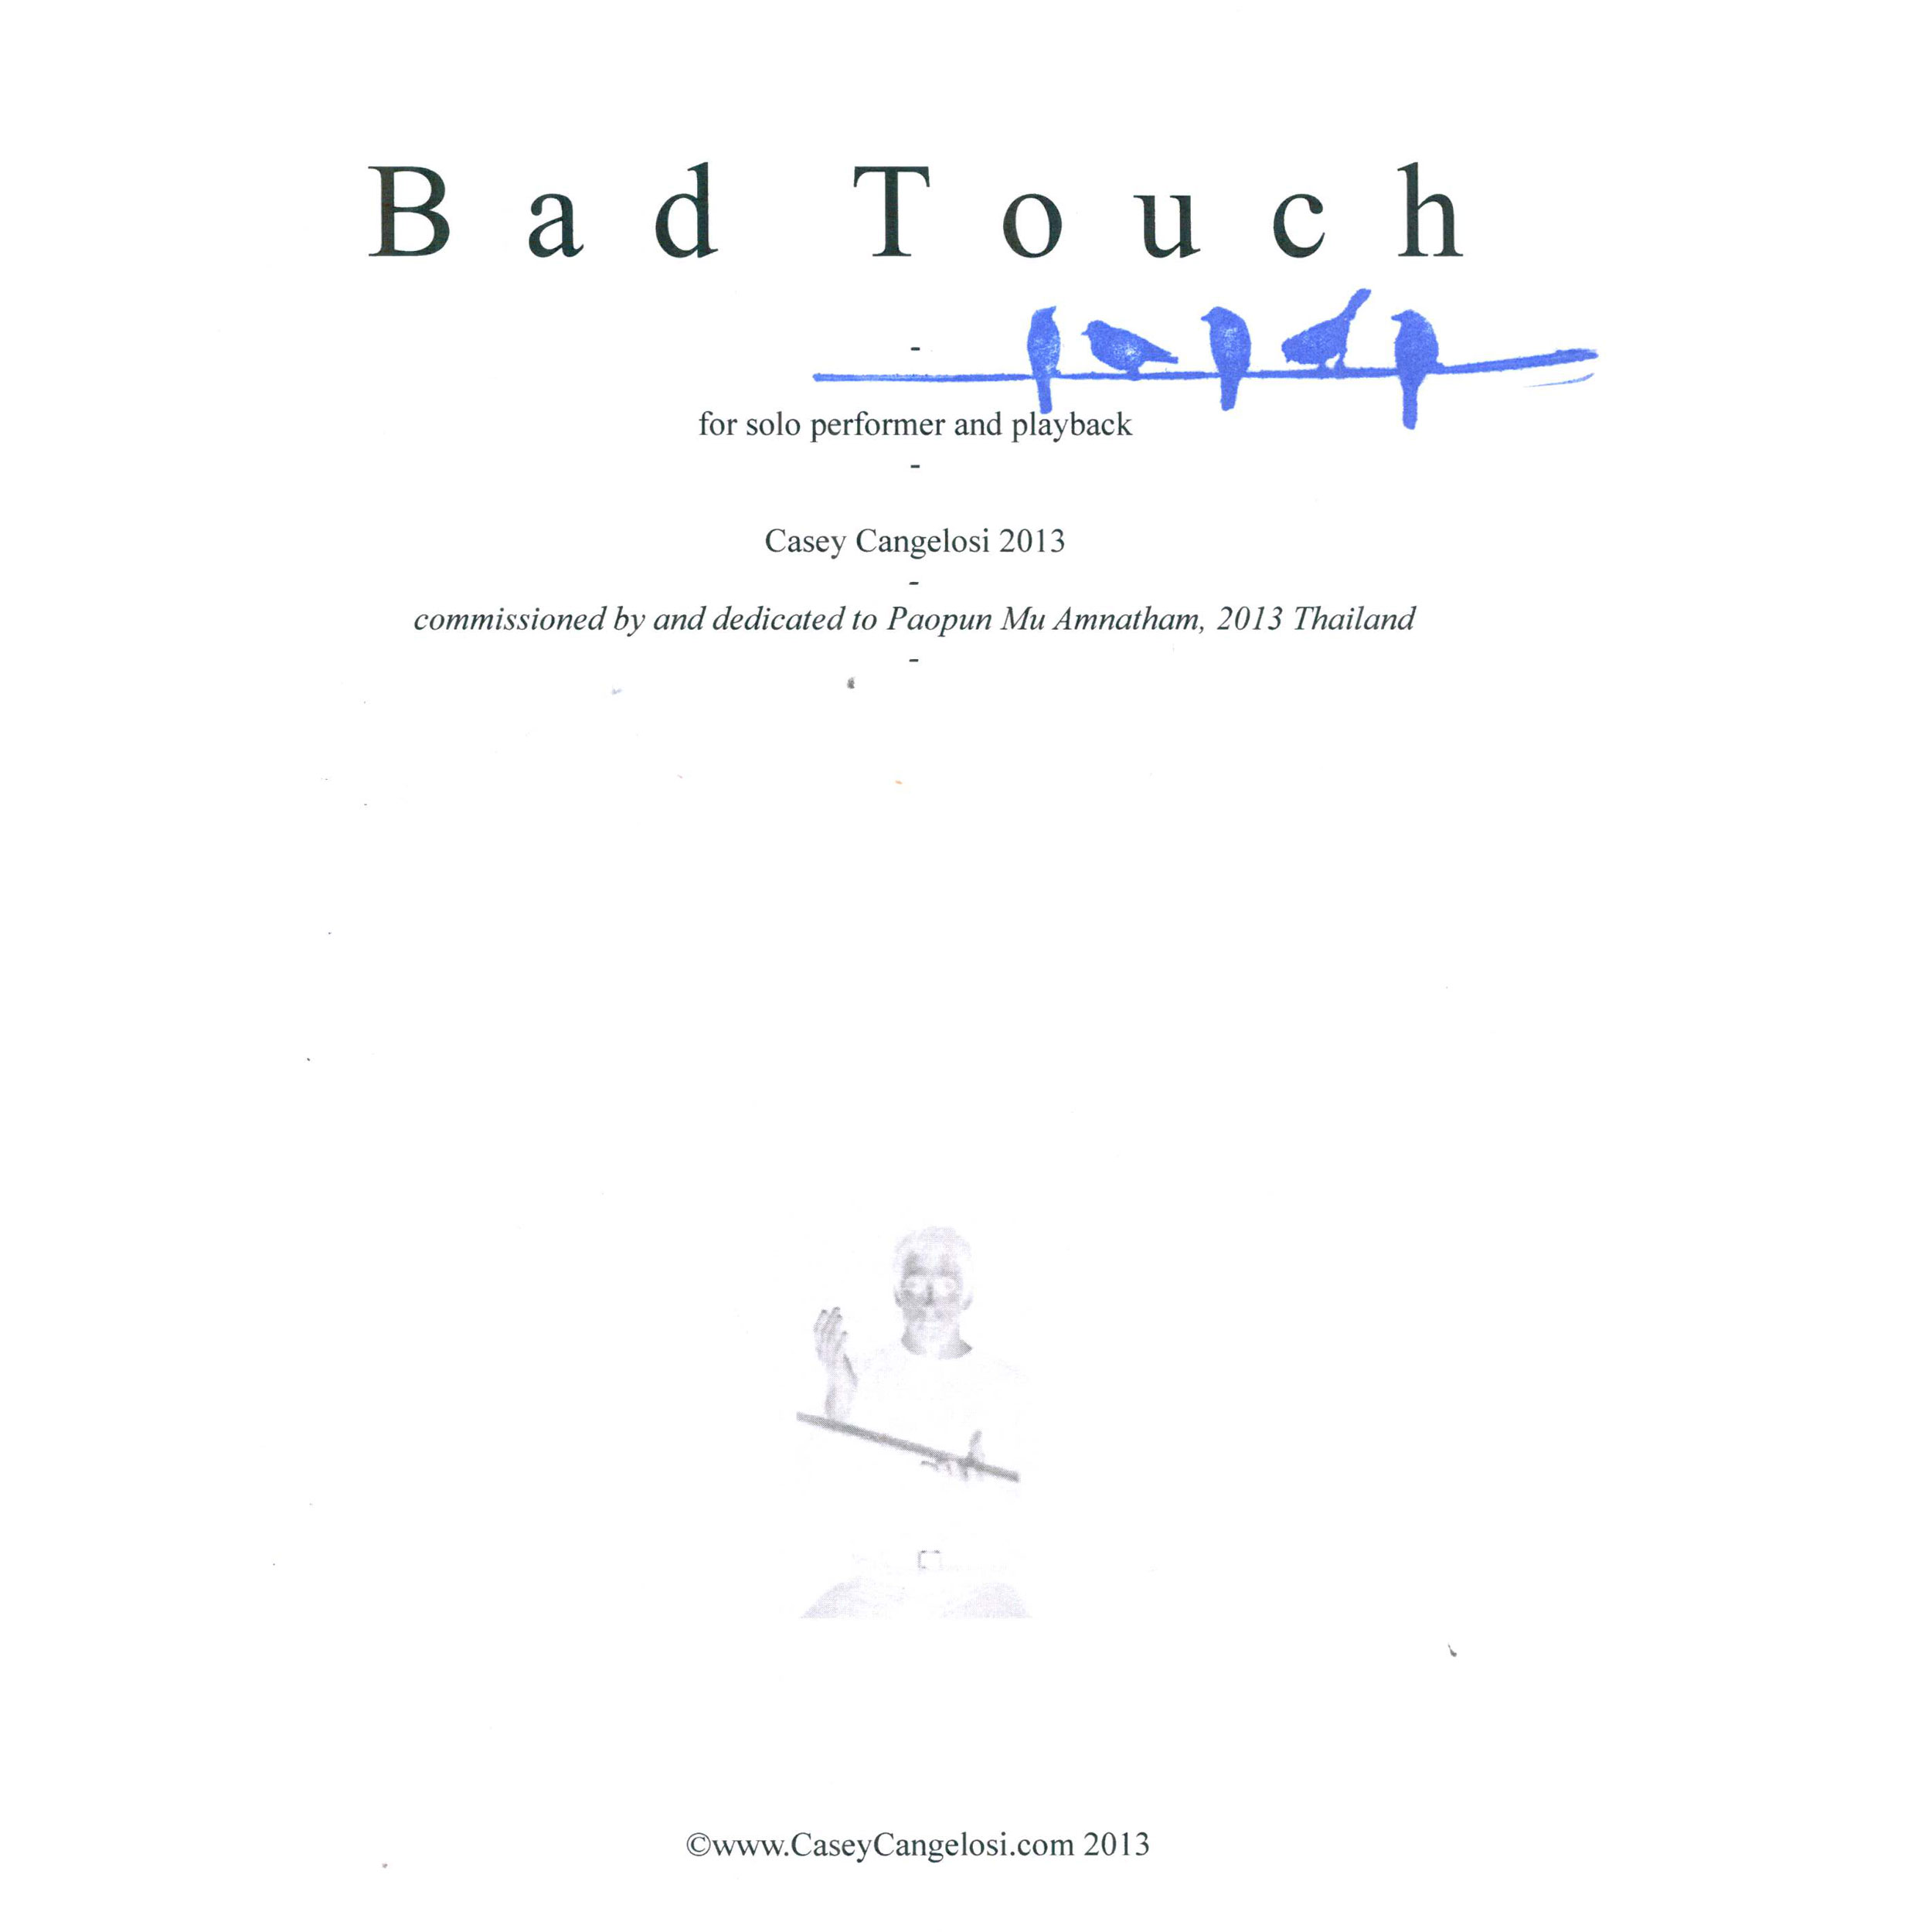 Bad Touch by Casey Cangelosi